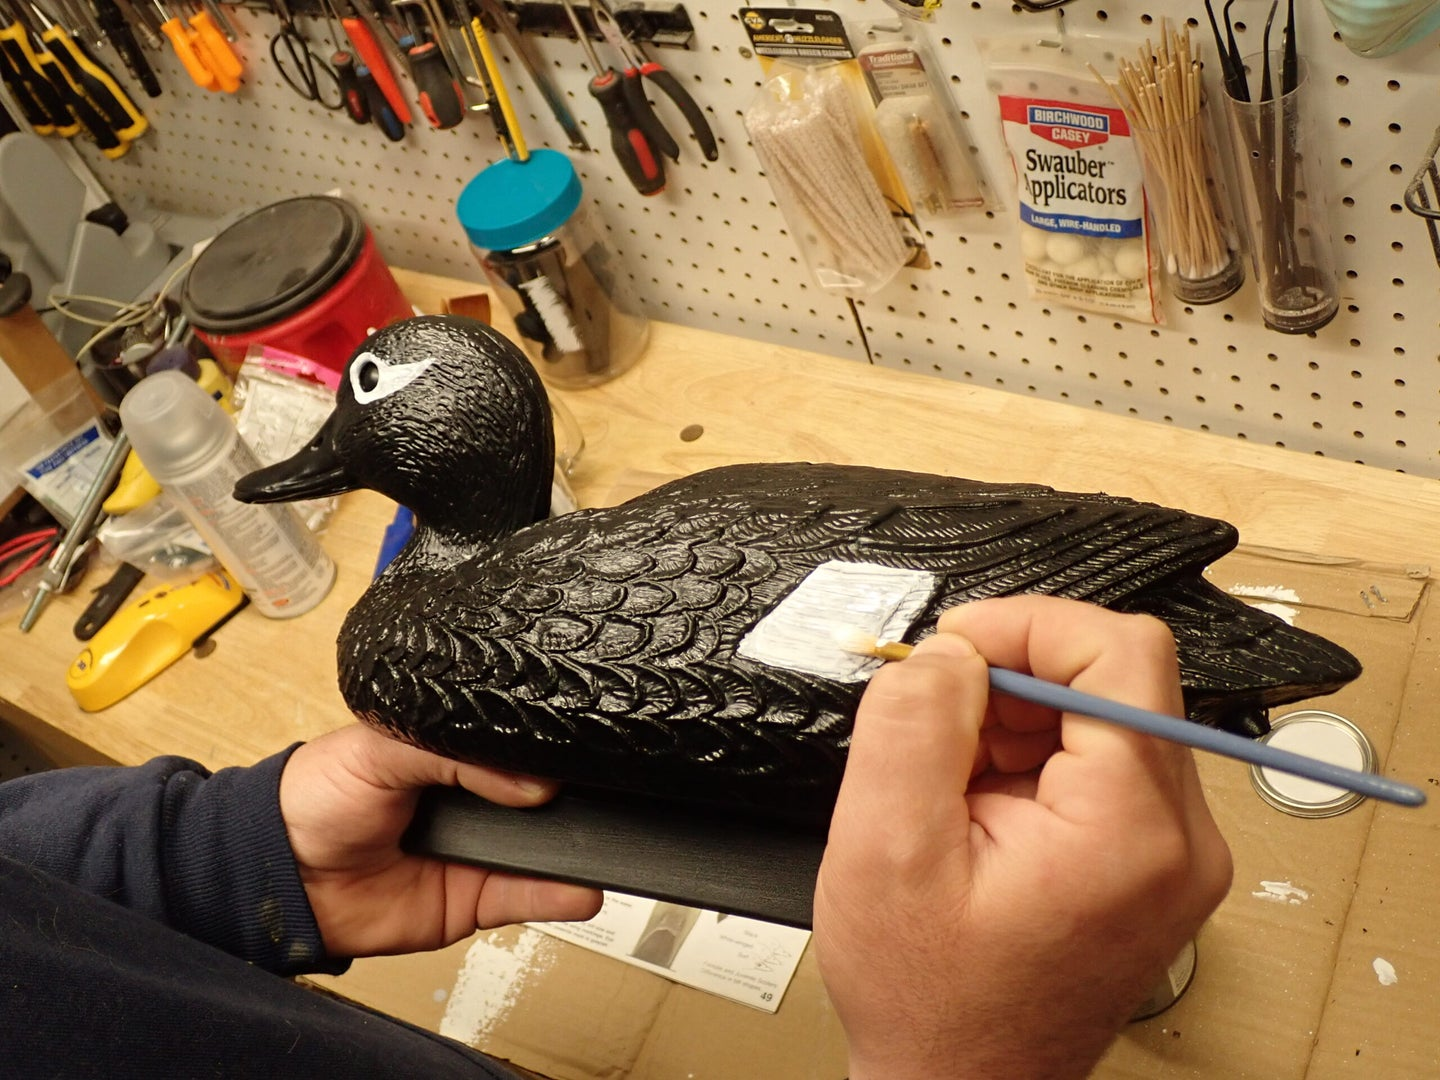 Painting duck decoy on a workbench.